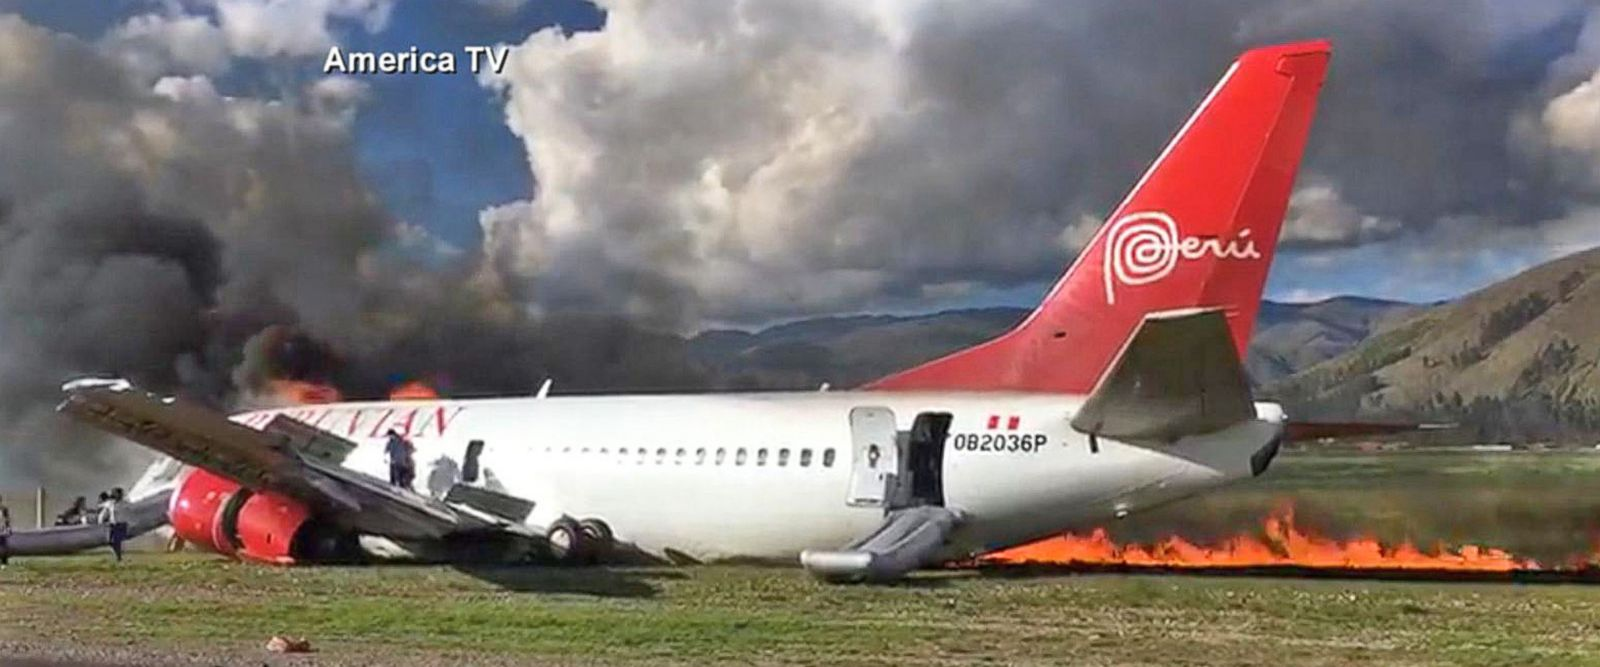 VIDEO: Video shows passenger jet catch fire in Peru